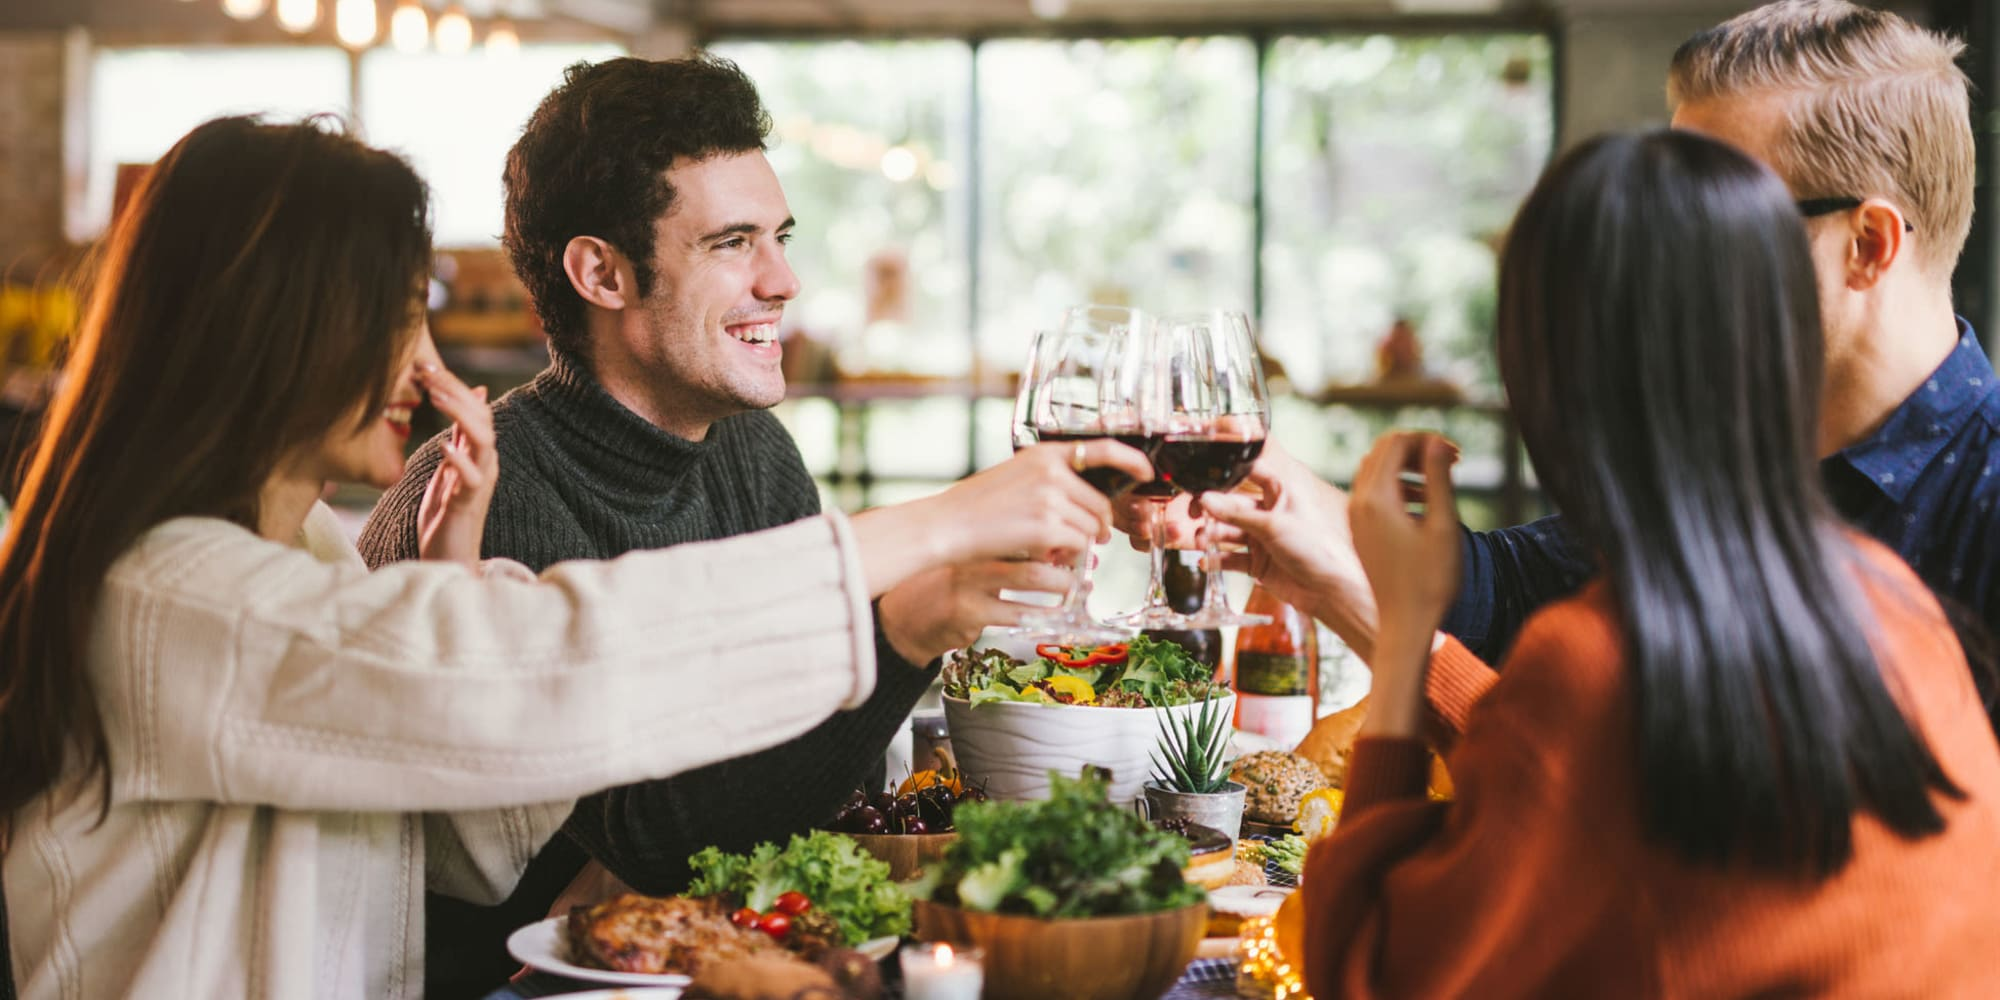 Resident friends enjoying wine and lively conversation before diving into the feast they ordered at their favorite restaurant near L'Estancia in Studio City, California